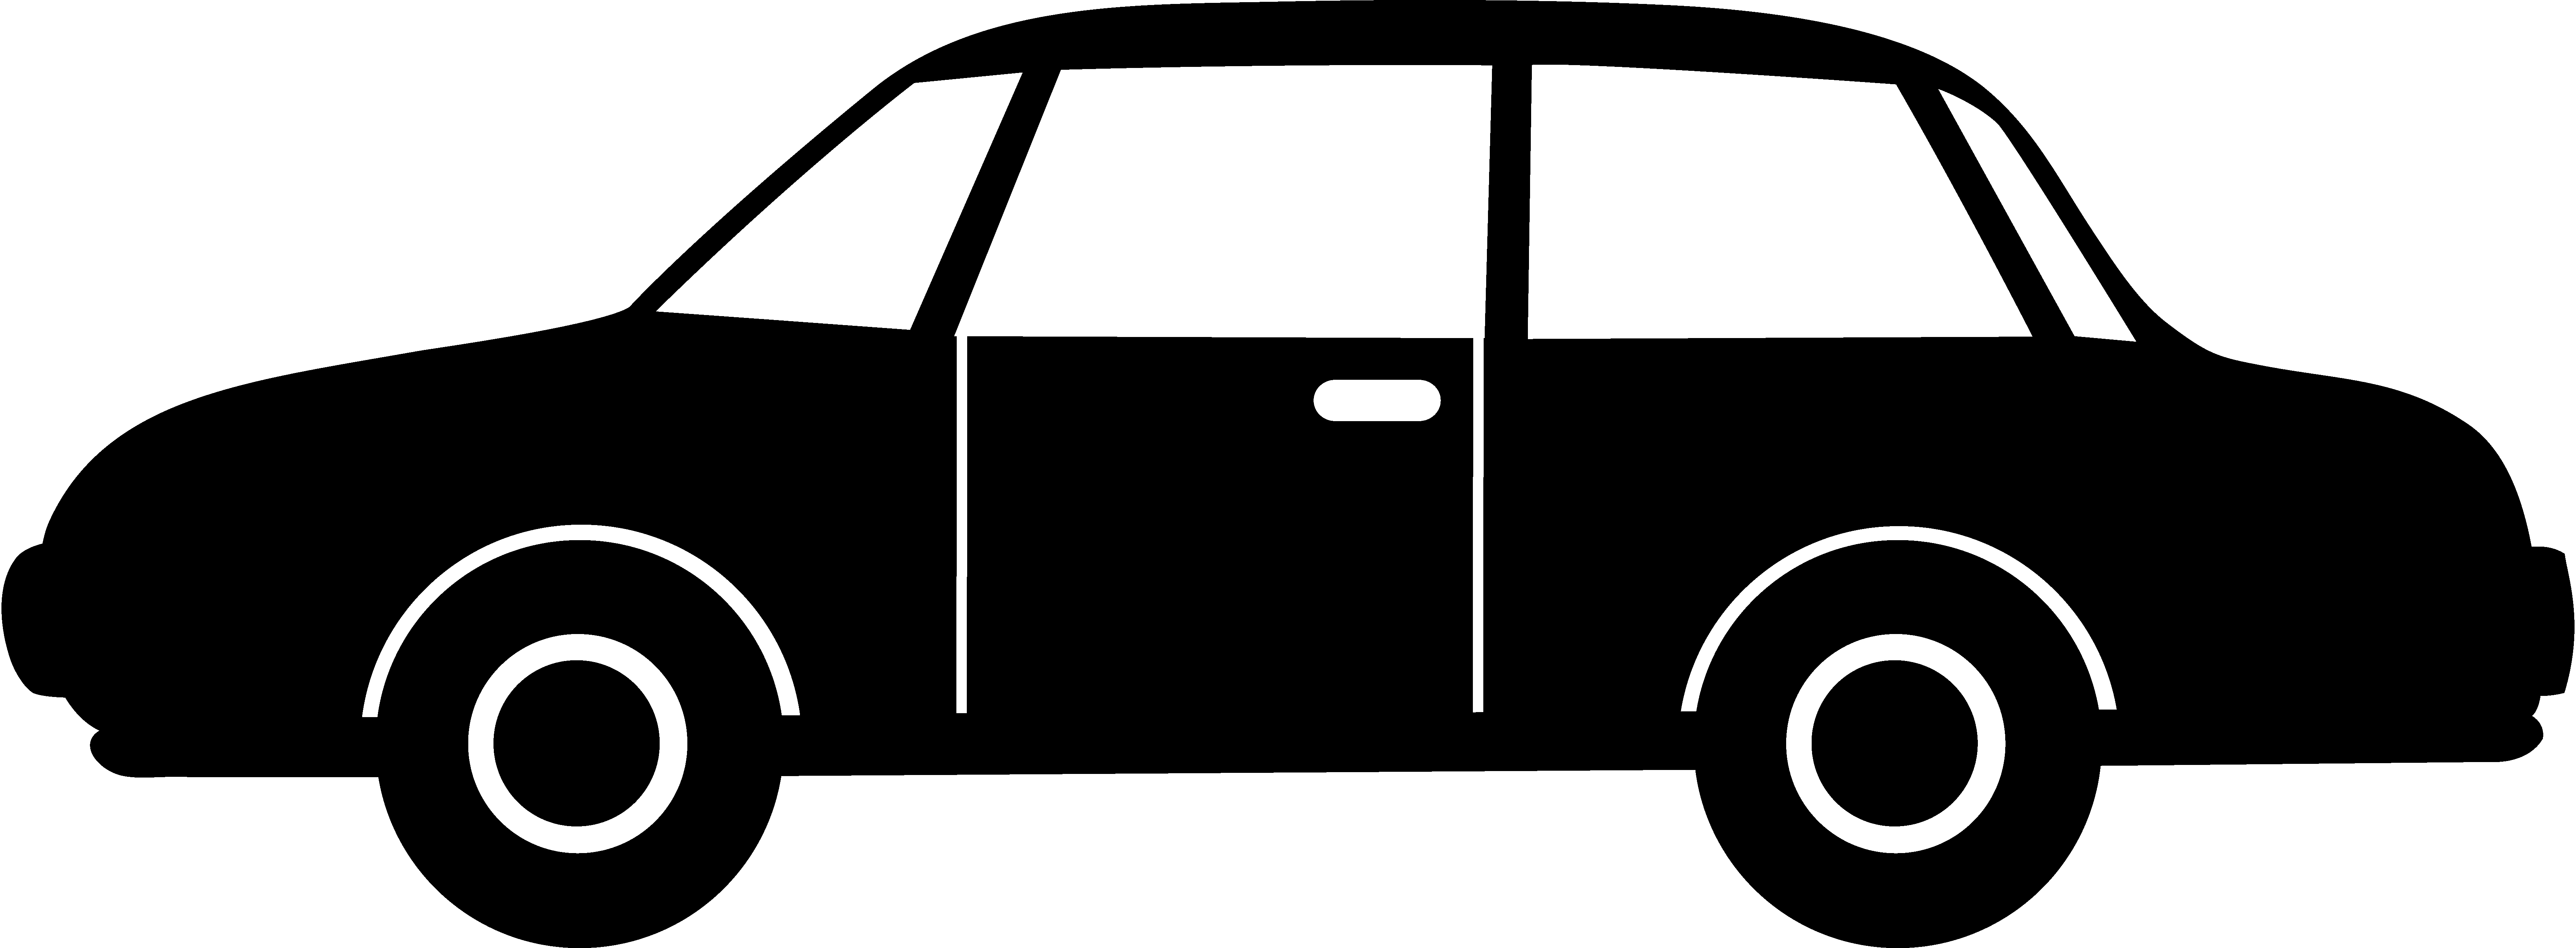 Images Best Free Clipart Car Silhouet image #21306